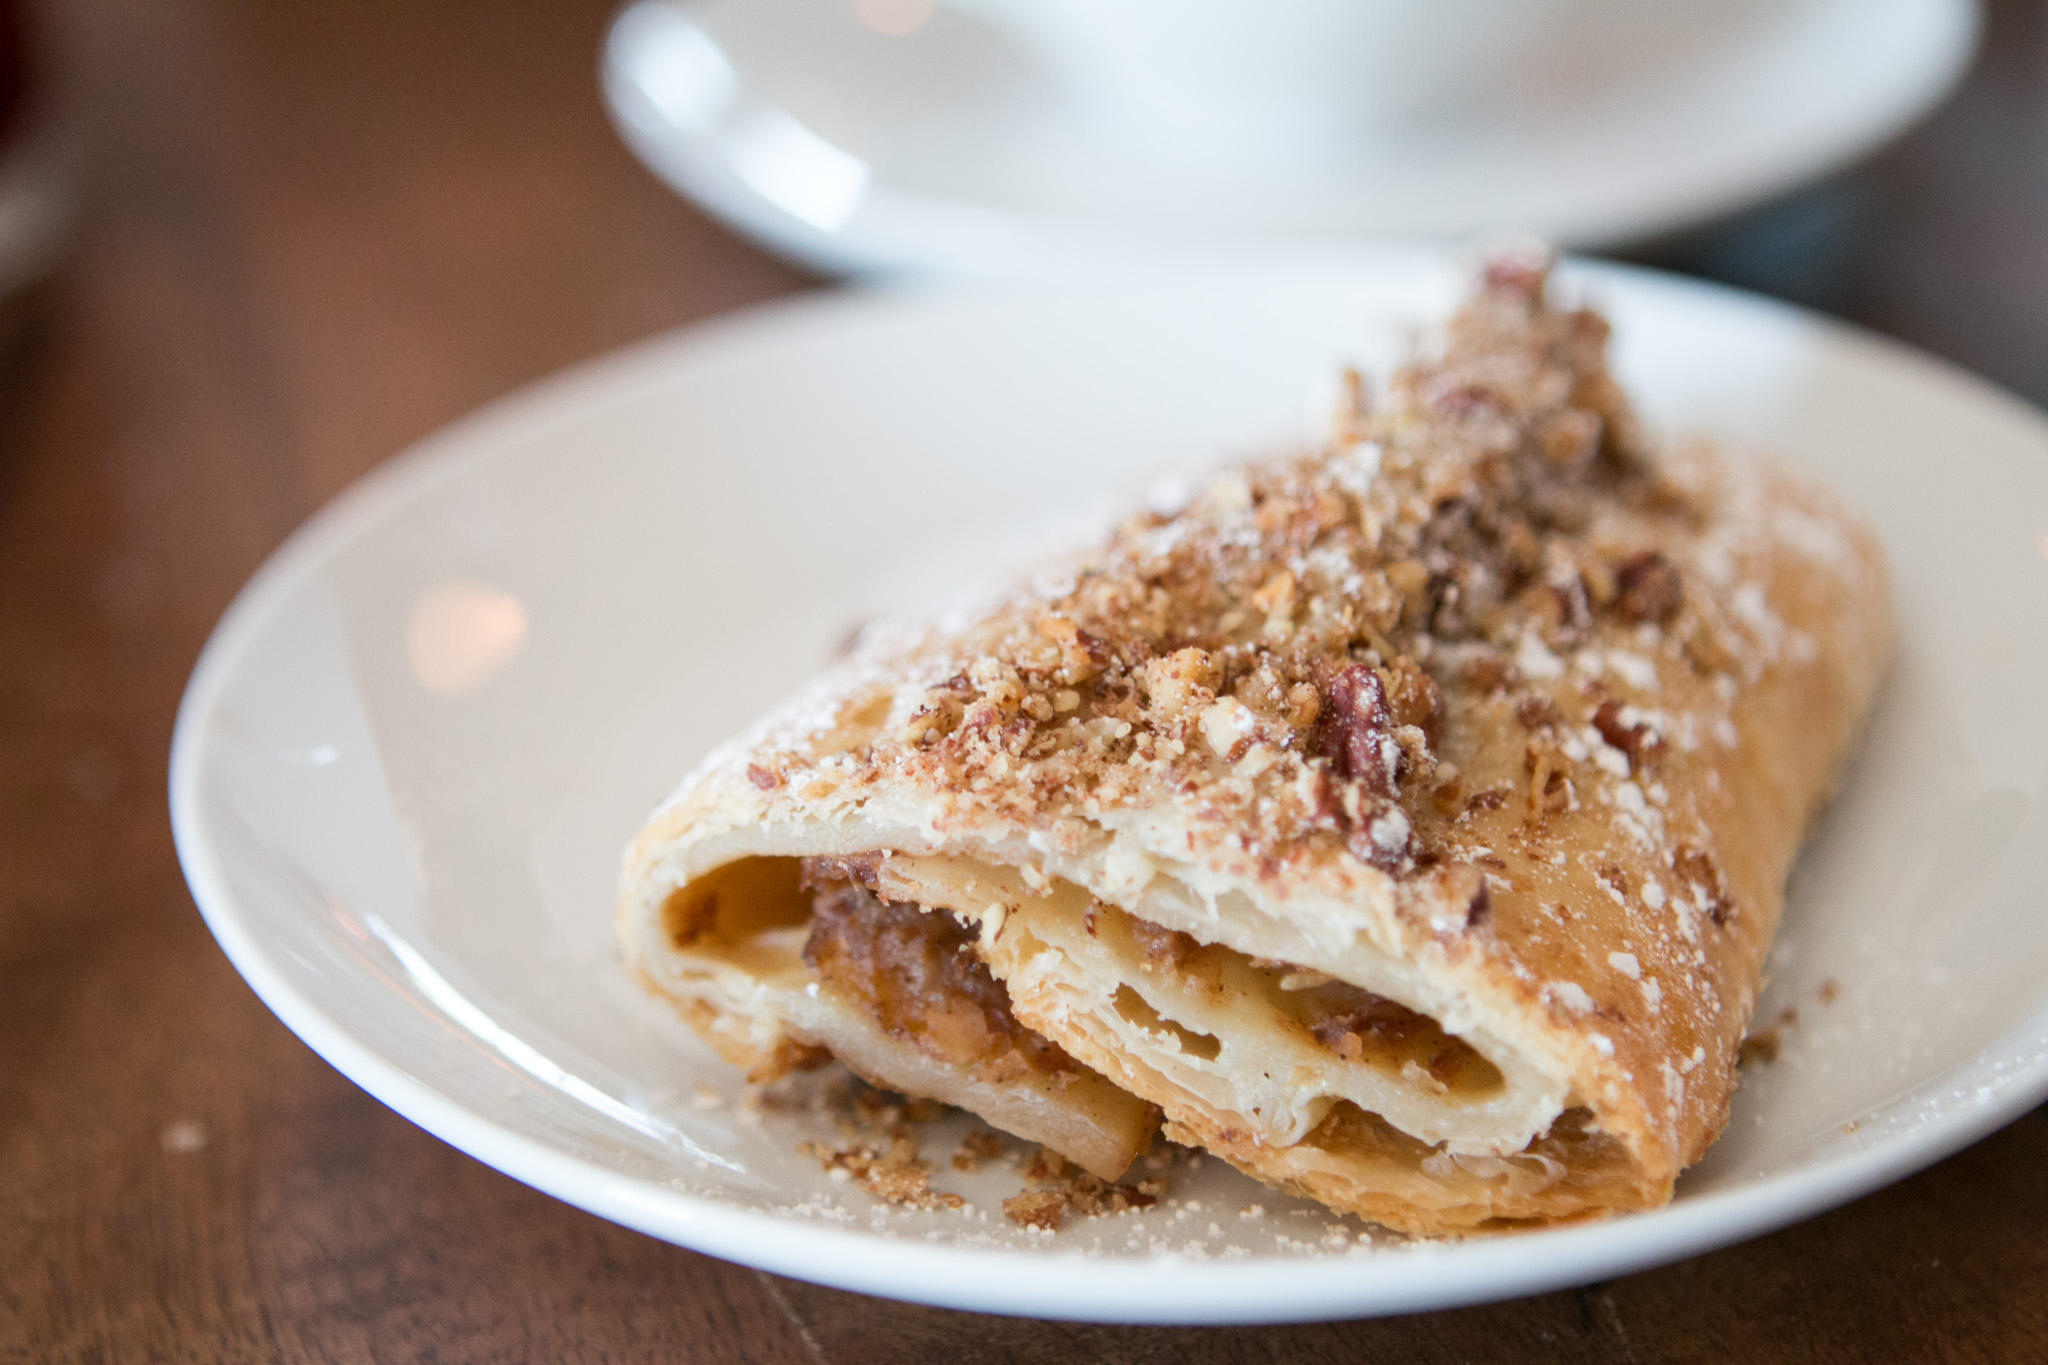 Commonwealth Coffee House & Bakery serves a apple streusel.